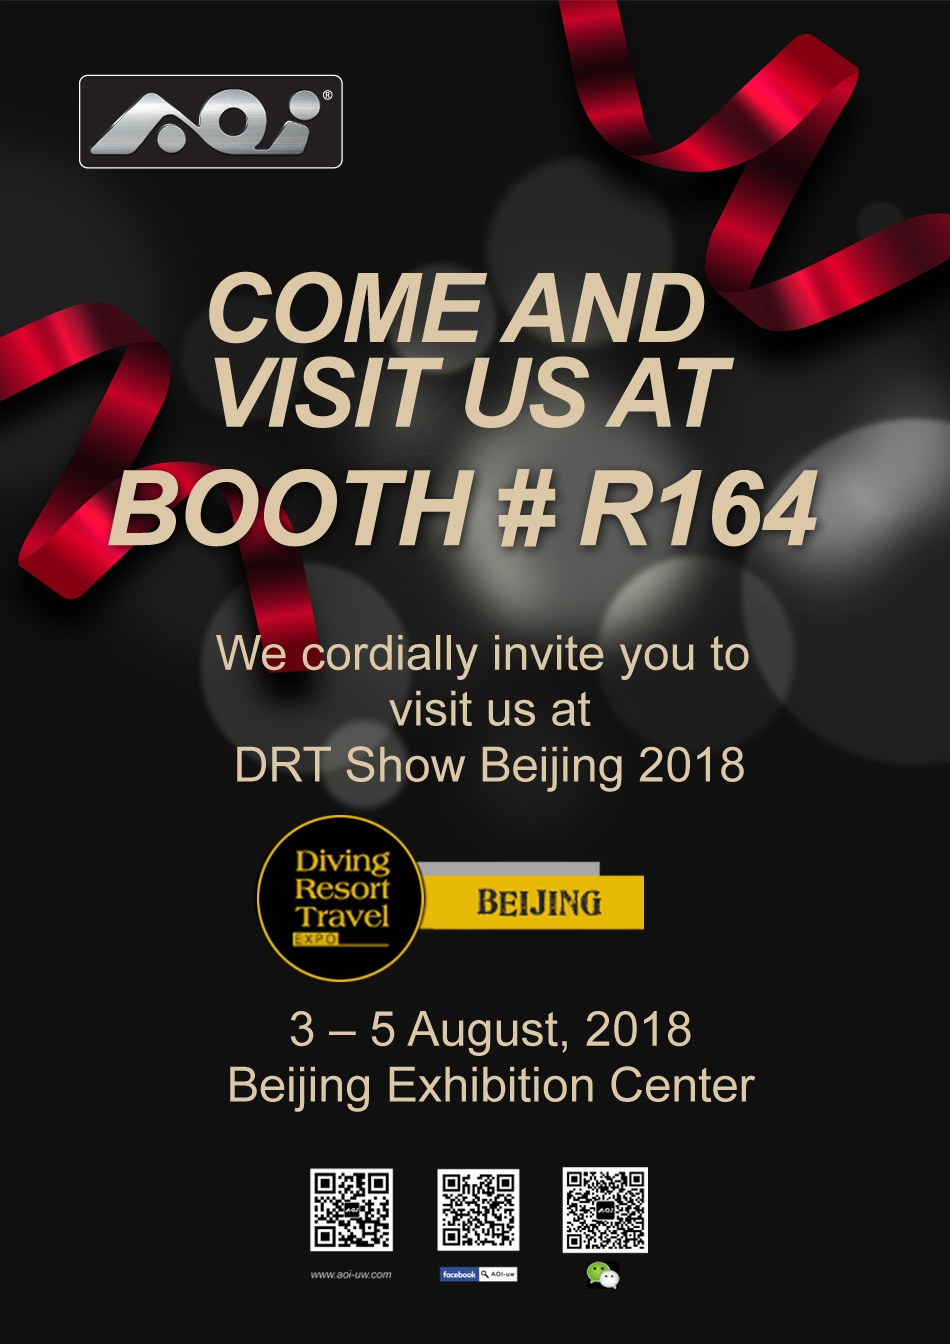 AOI Invitation to DRT Show Beijing 2018